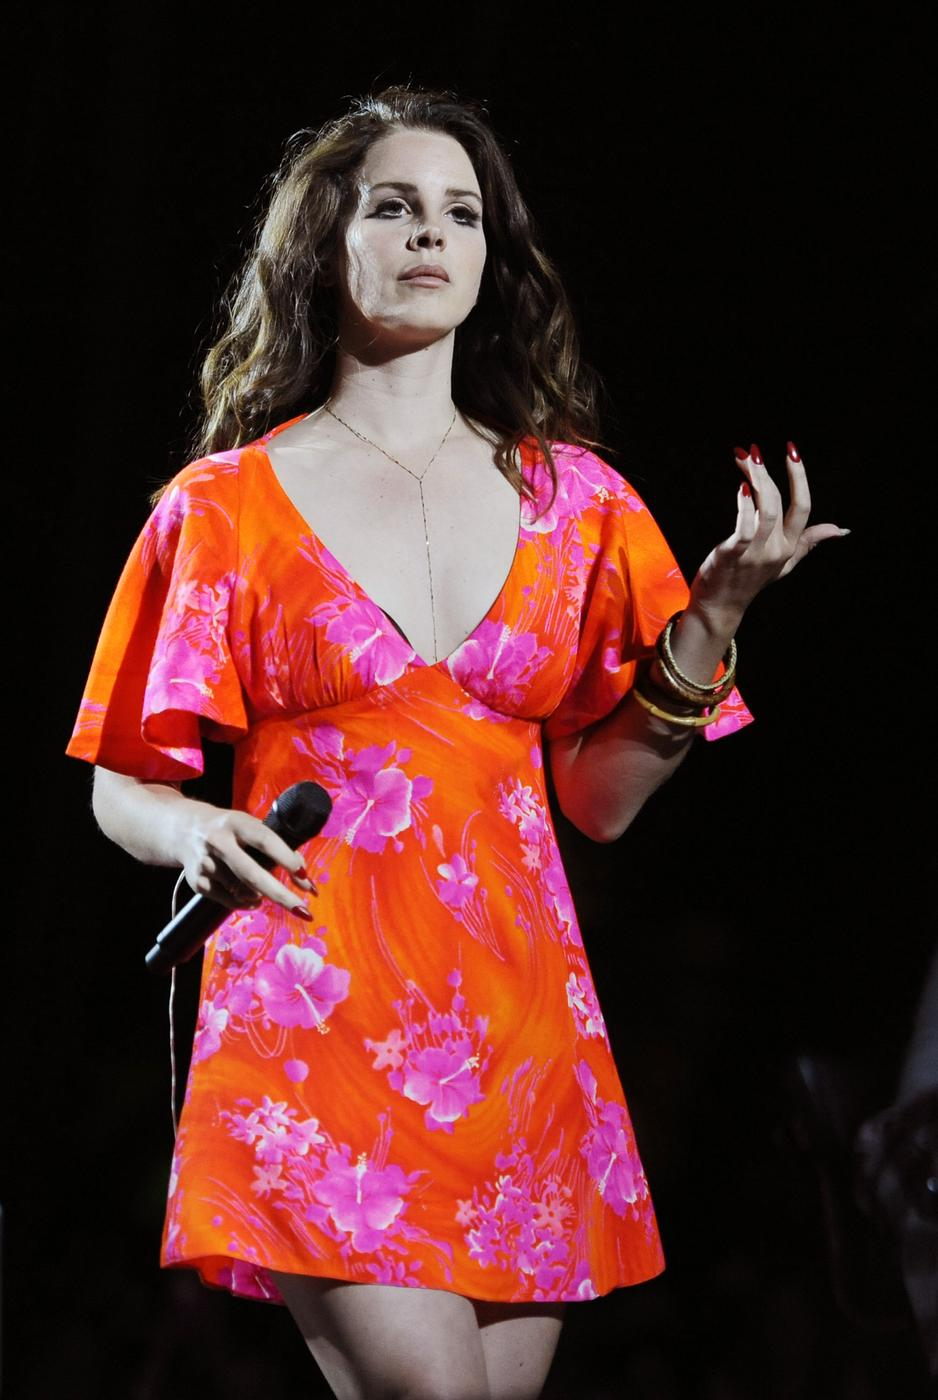 Lana Del Rey fans boo as singer axes gig blaming bad weather